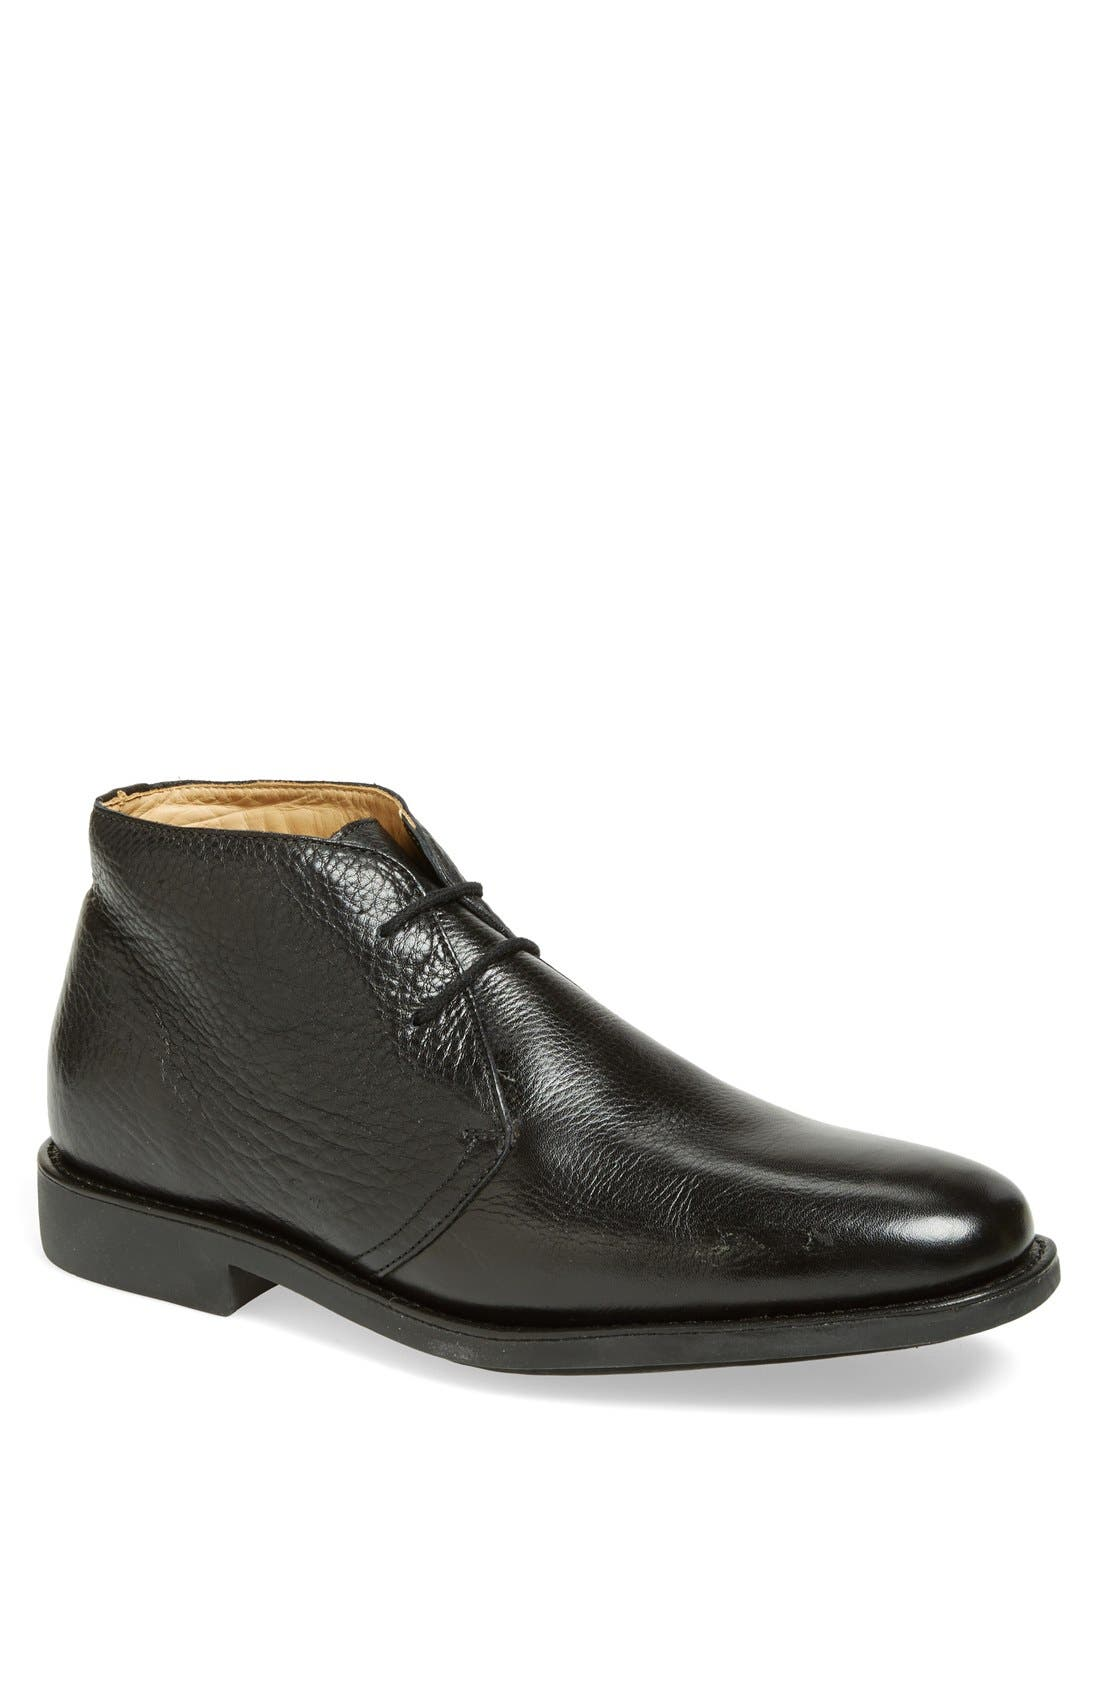 Anatomic & Co Londrina Chukka Boot (Men)